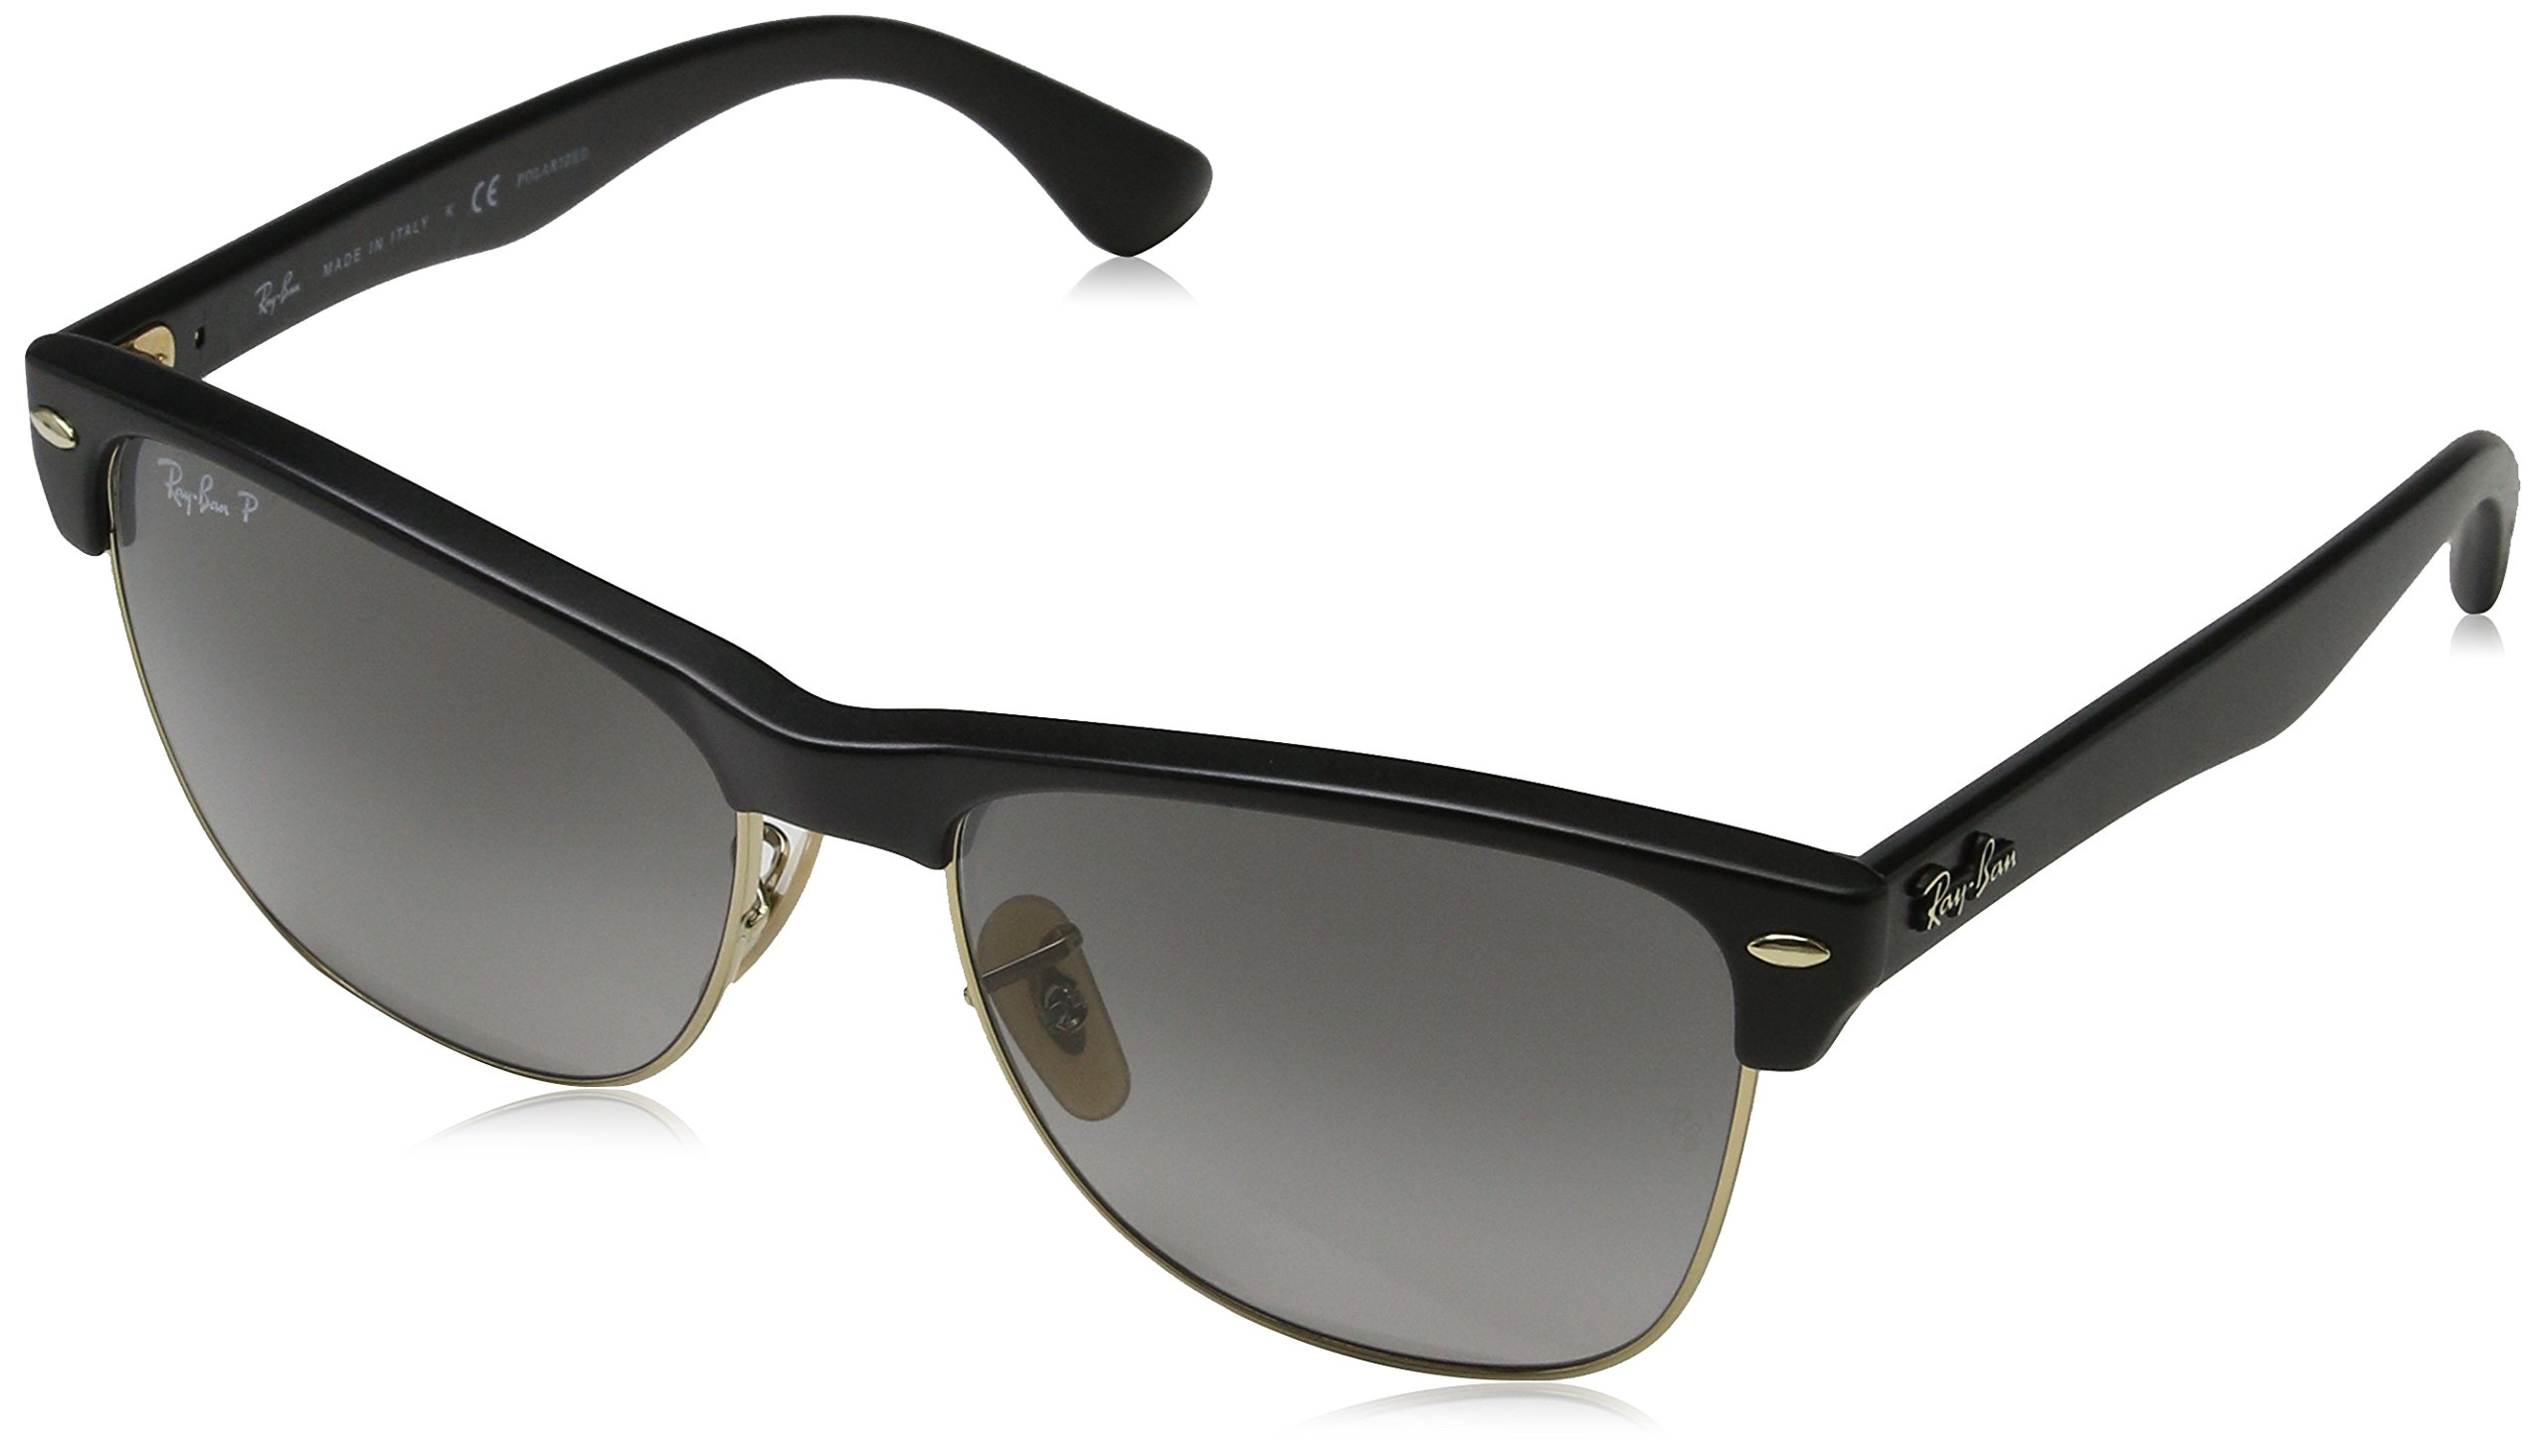 Ray-Ban RB4175 Clubmaster Square Oversized Sunglasses, Black Demigloss/Polarized Grey Gradient, 57 mm